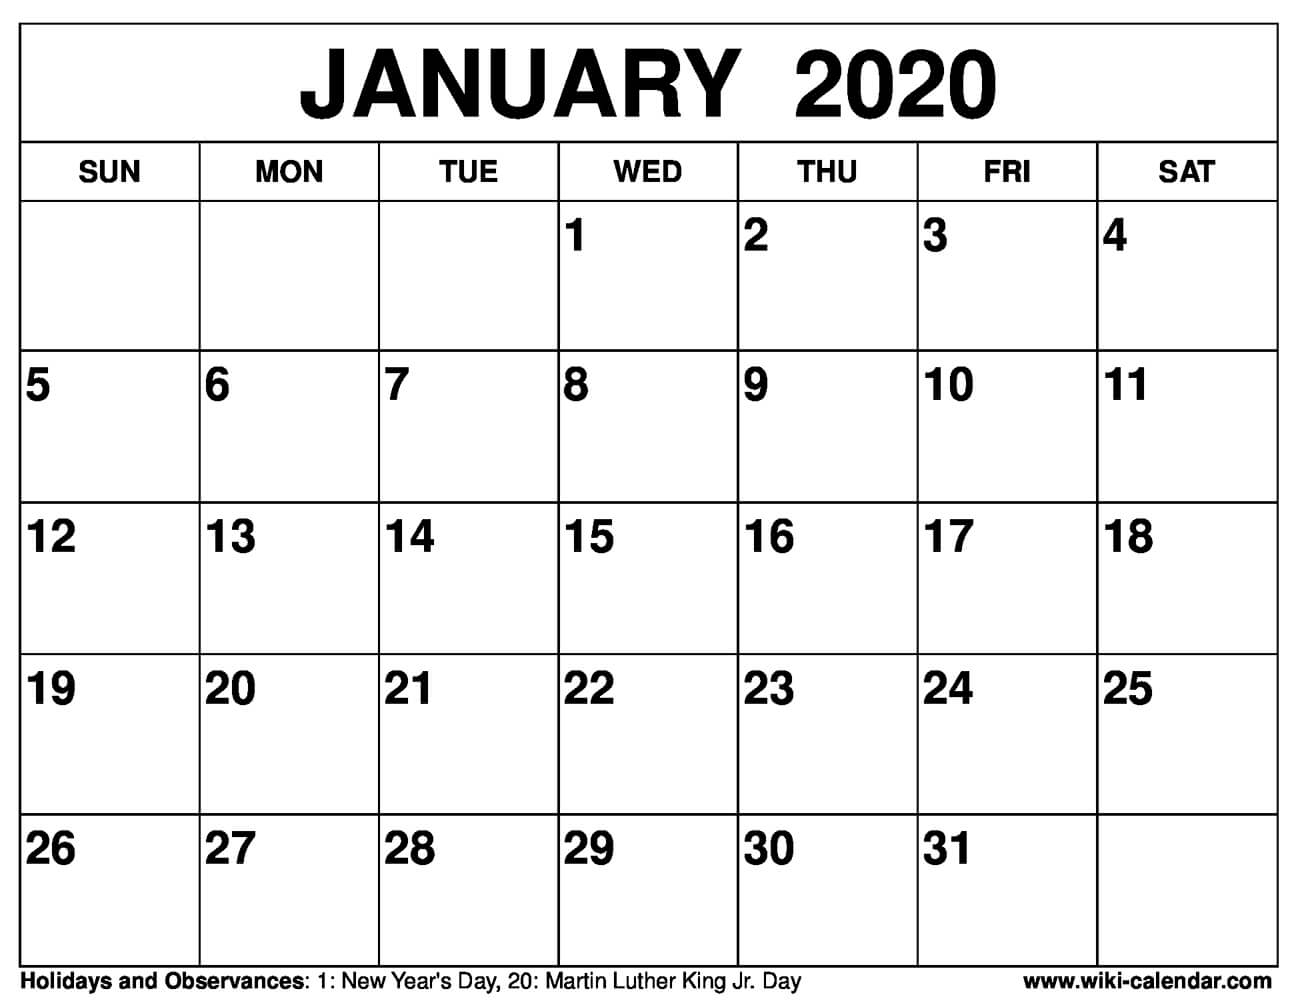 Calendar Page January 2020  Bolan.horizonconsulting.co for Calander January 2020